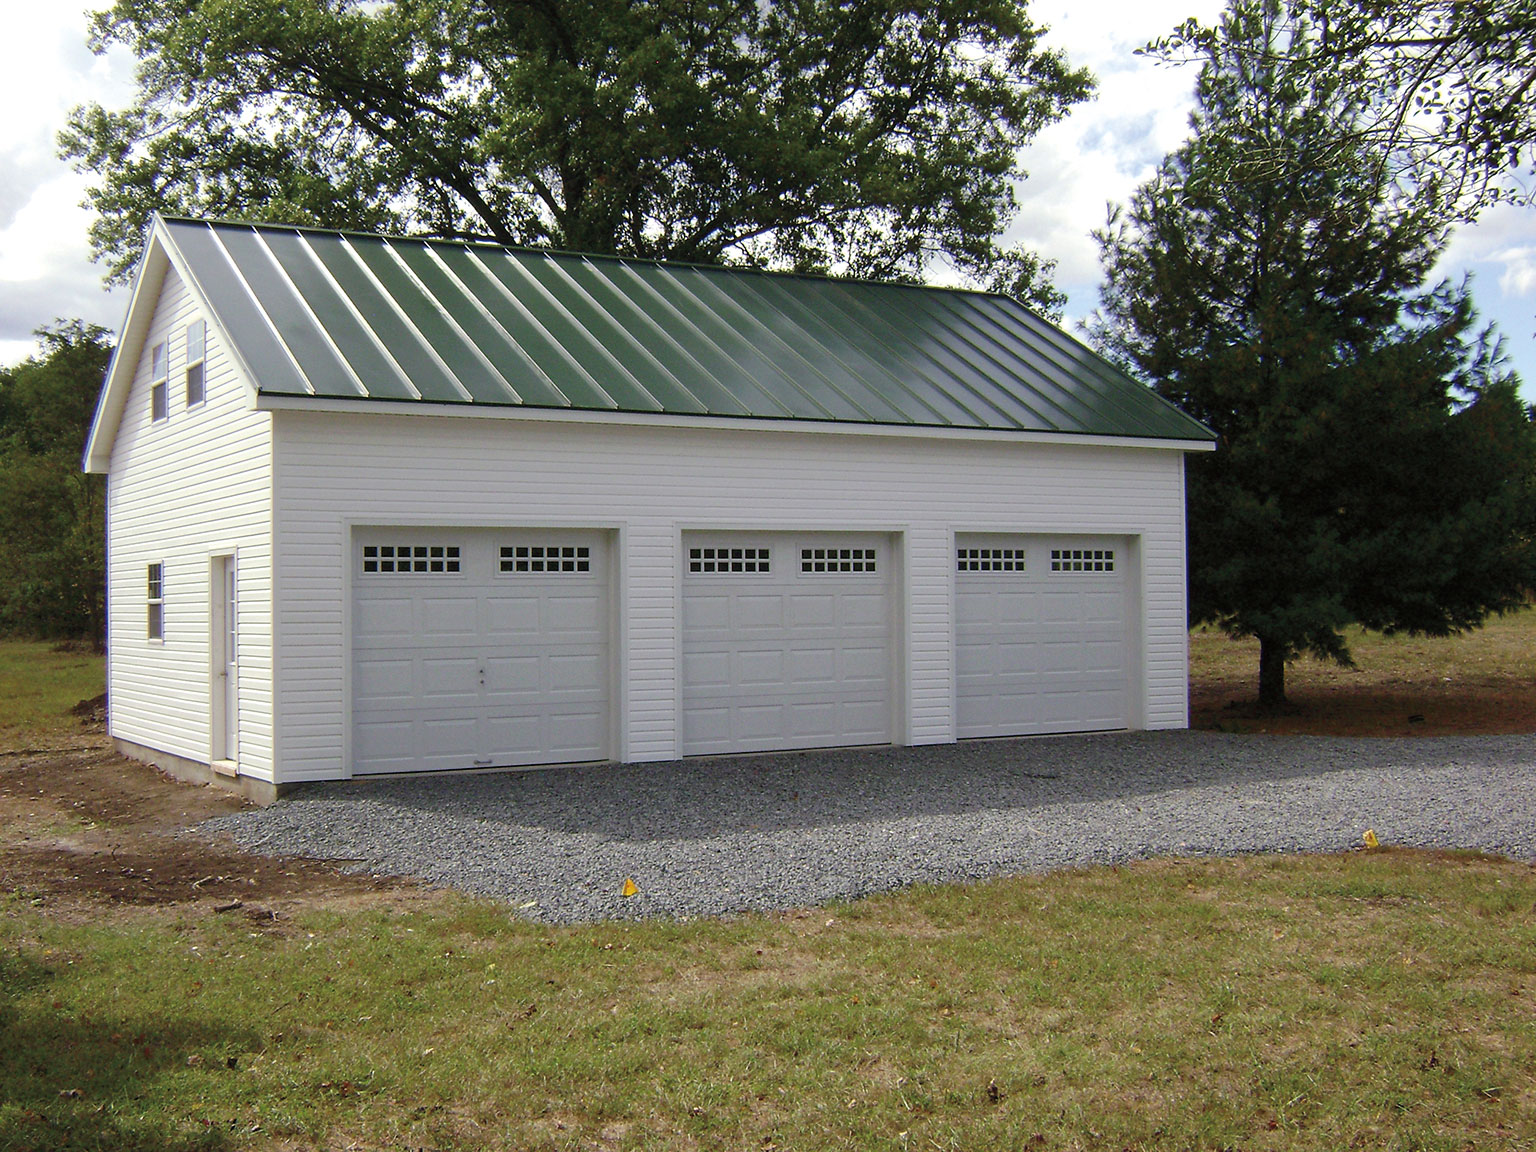 ny made company a amish garage on garages barn frame with in car site custom built pre reverse oneonta